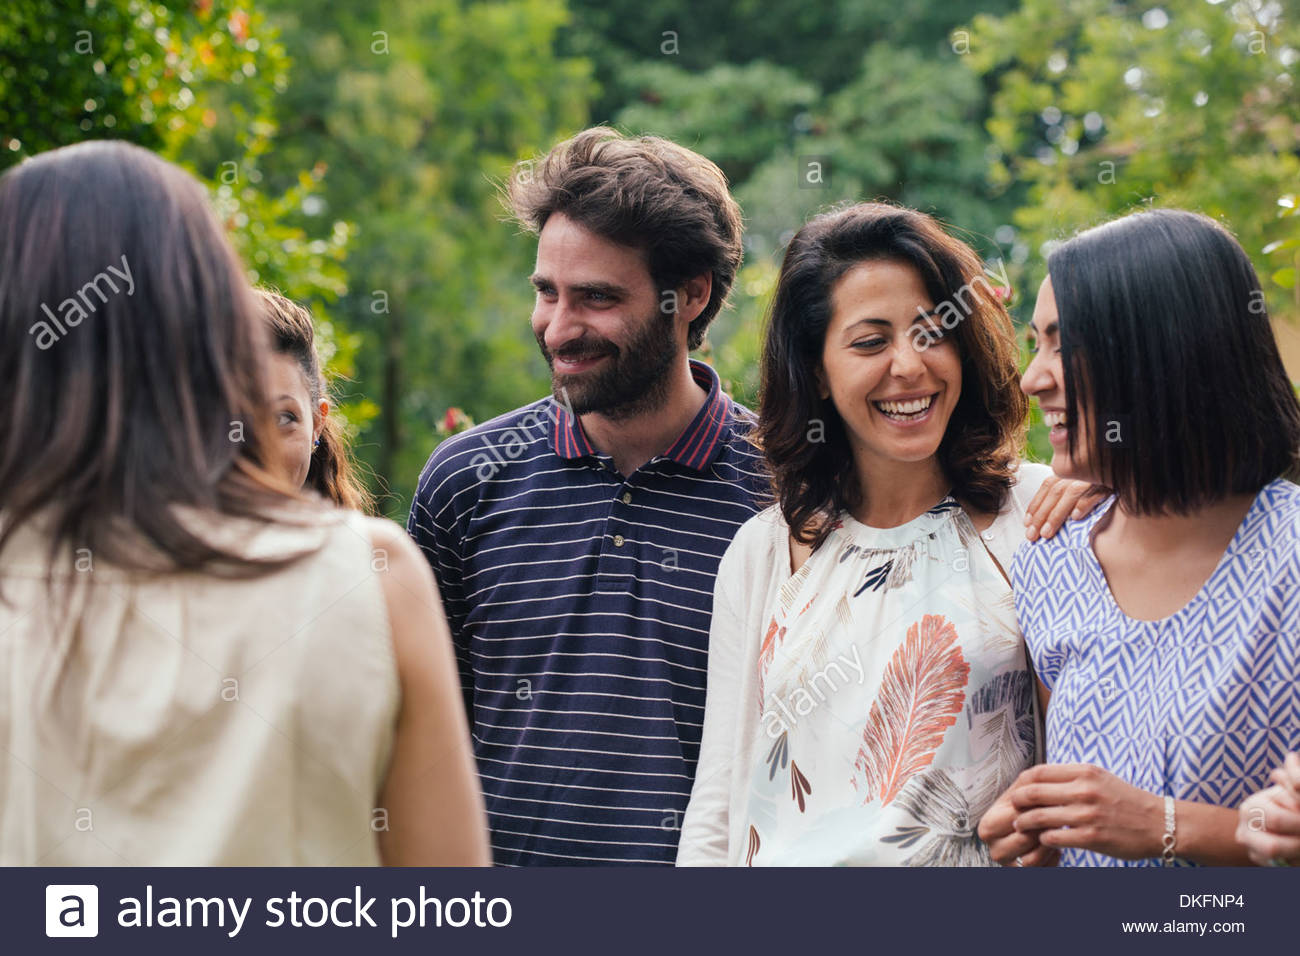 Family members talking at outdoor gathering - Stock Image